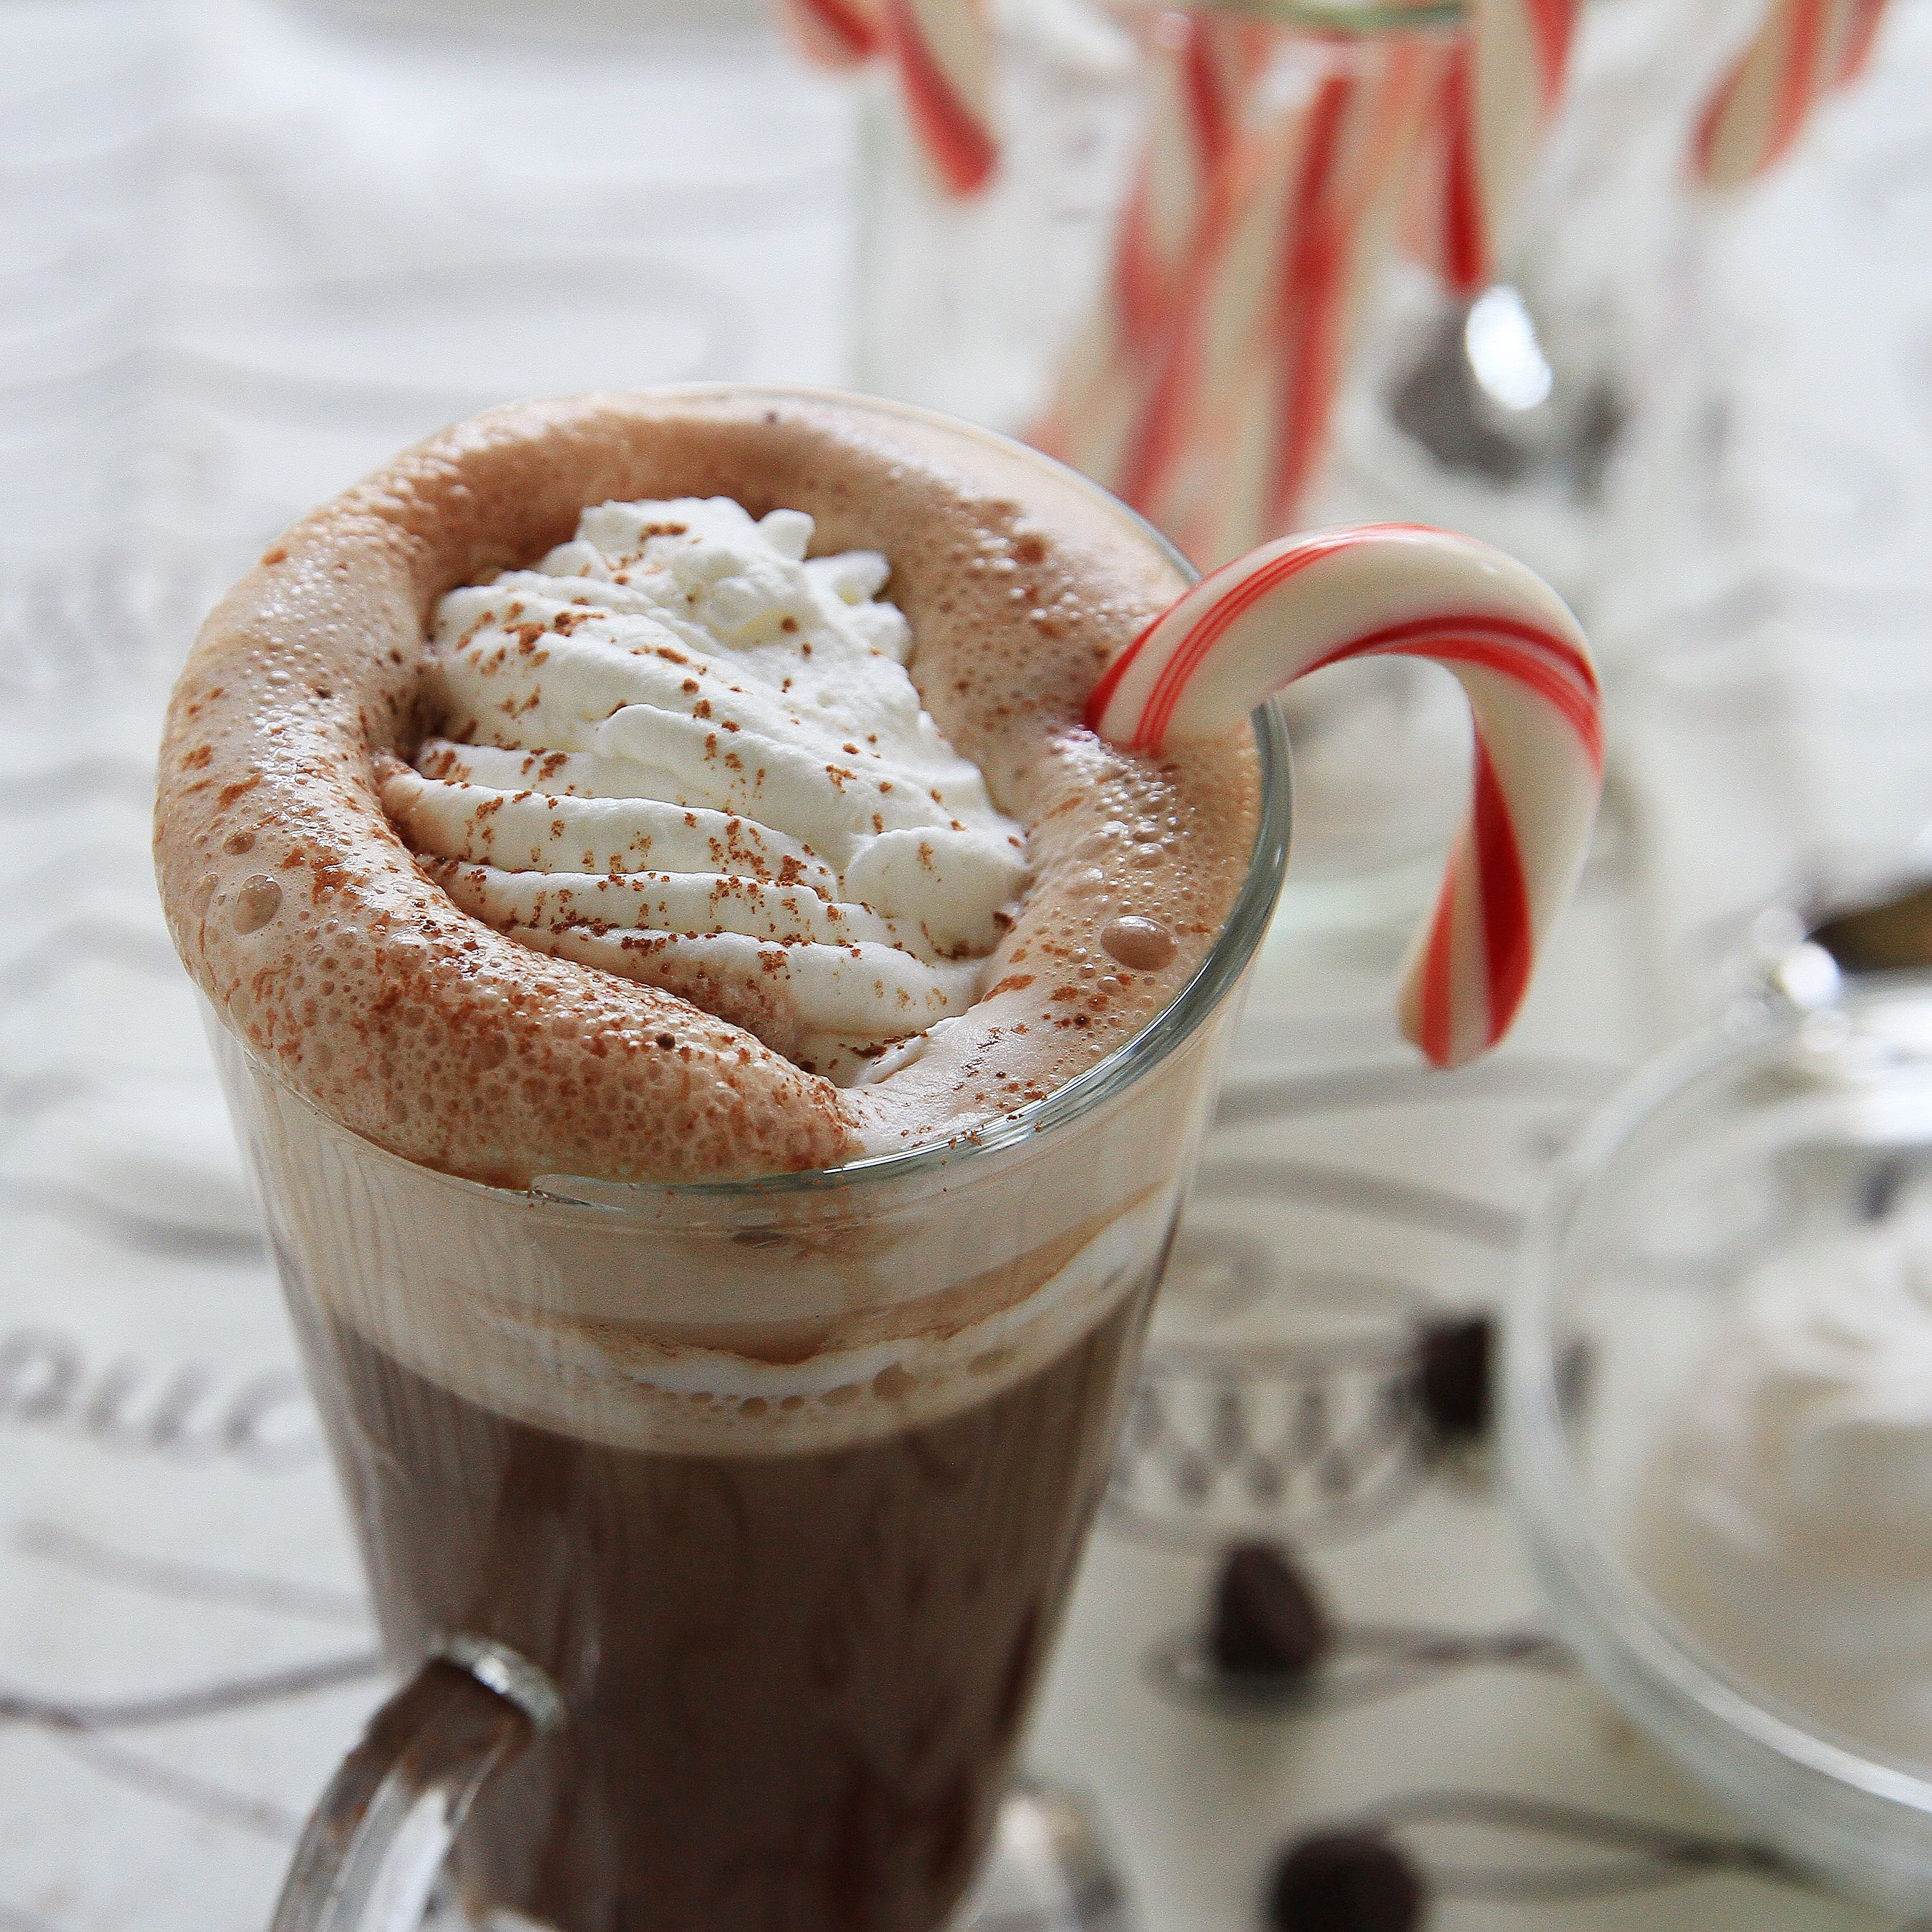 Enjoy this peppermint mocha on cozy winter nights or with